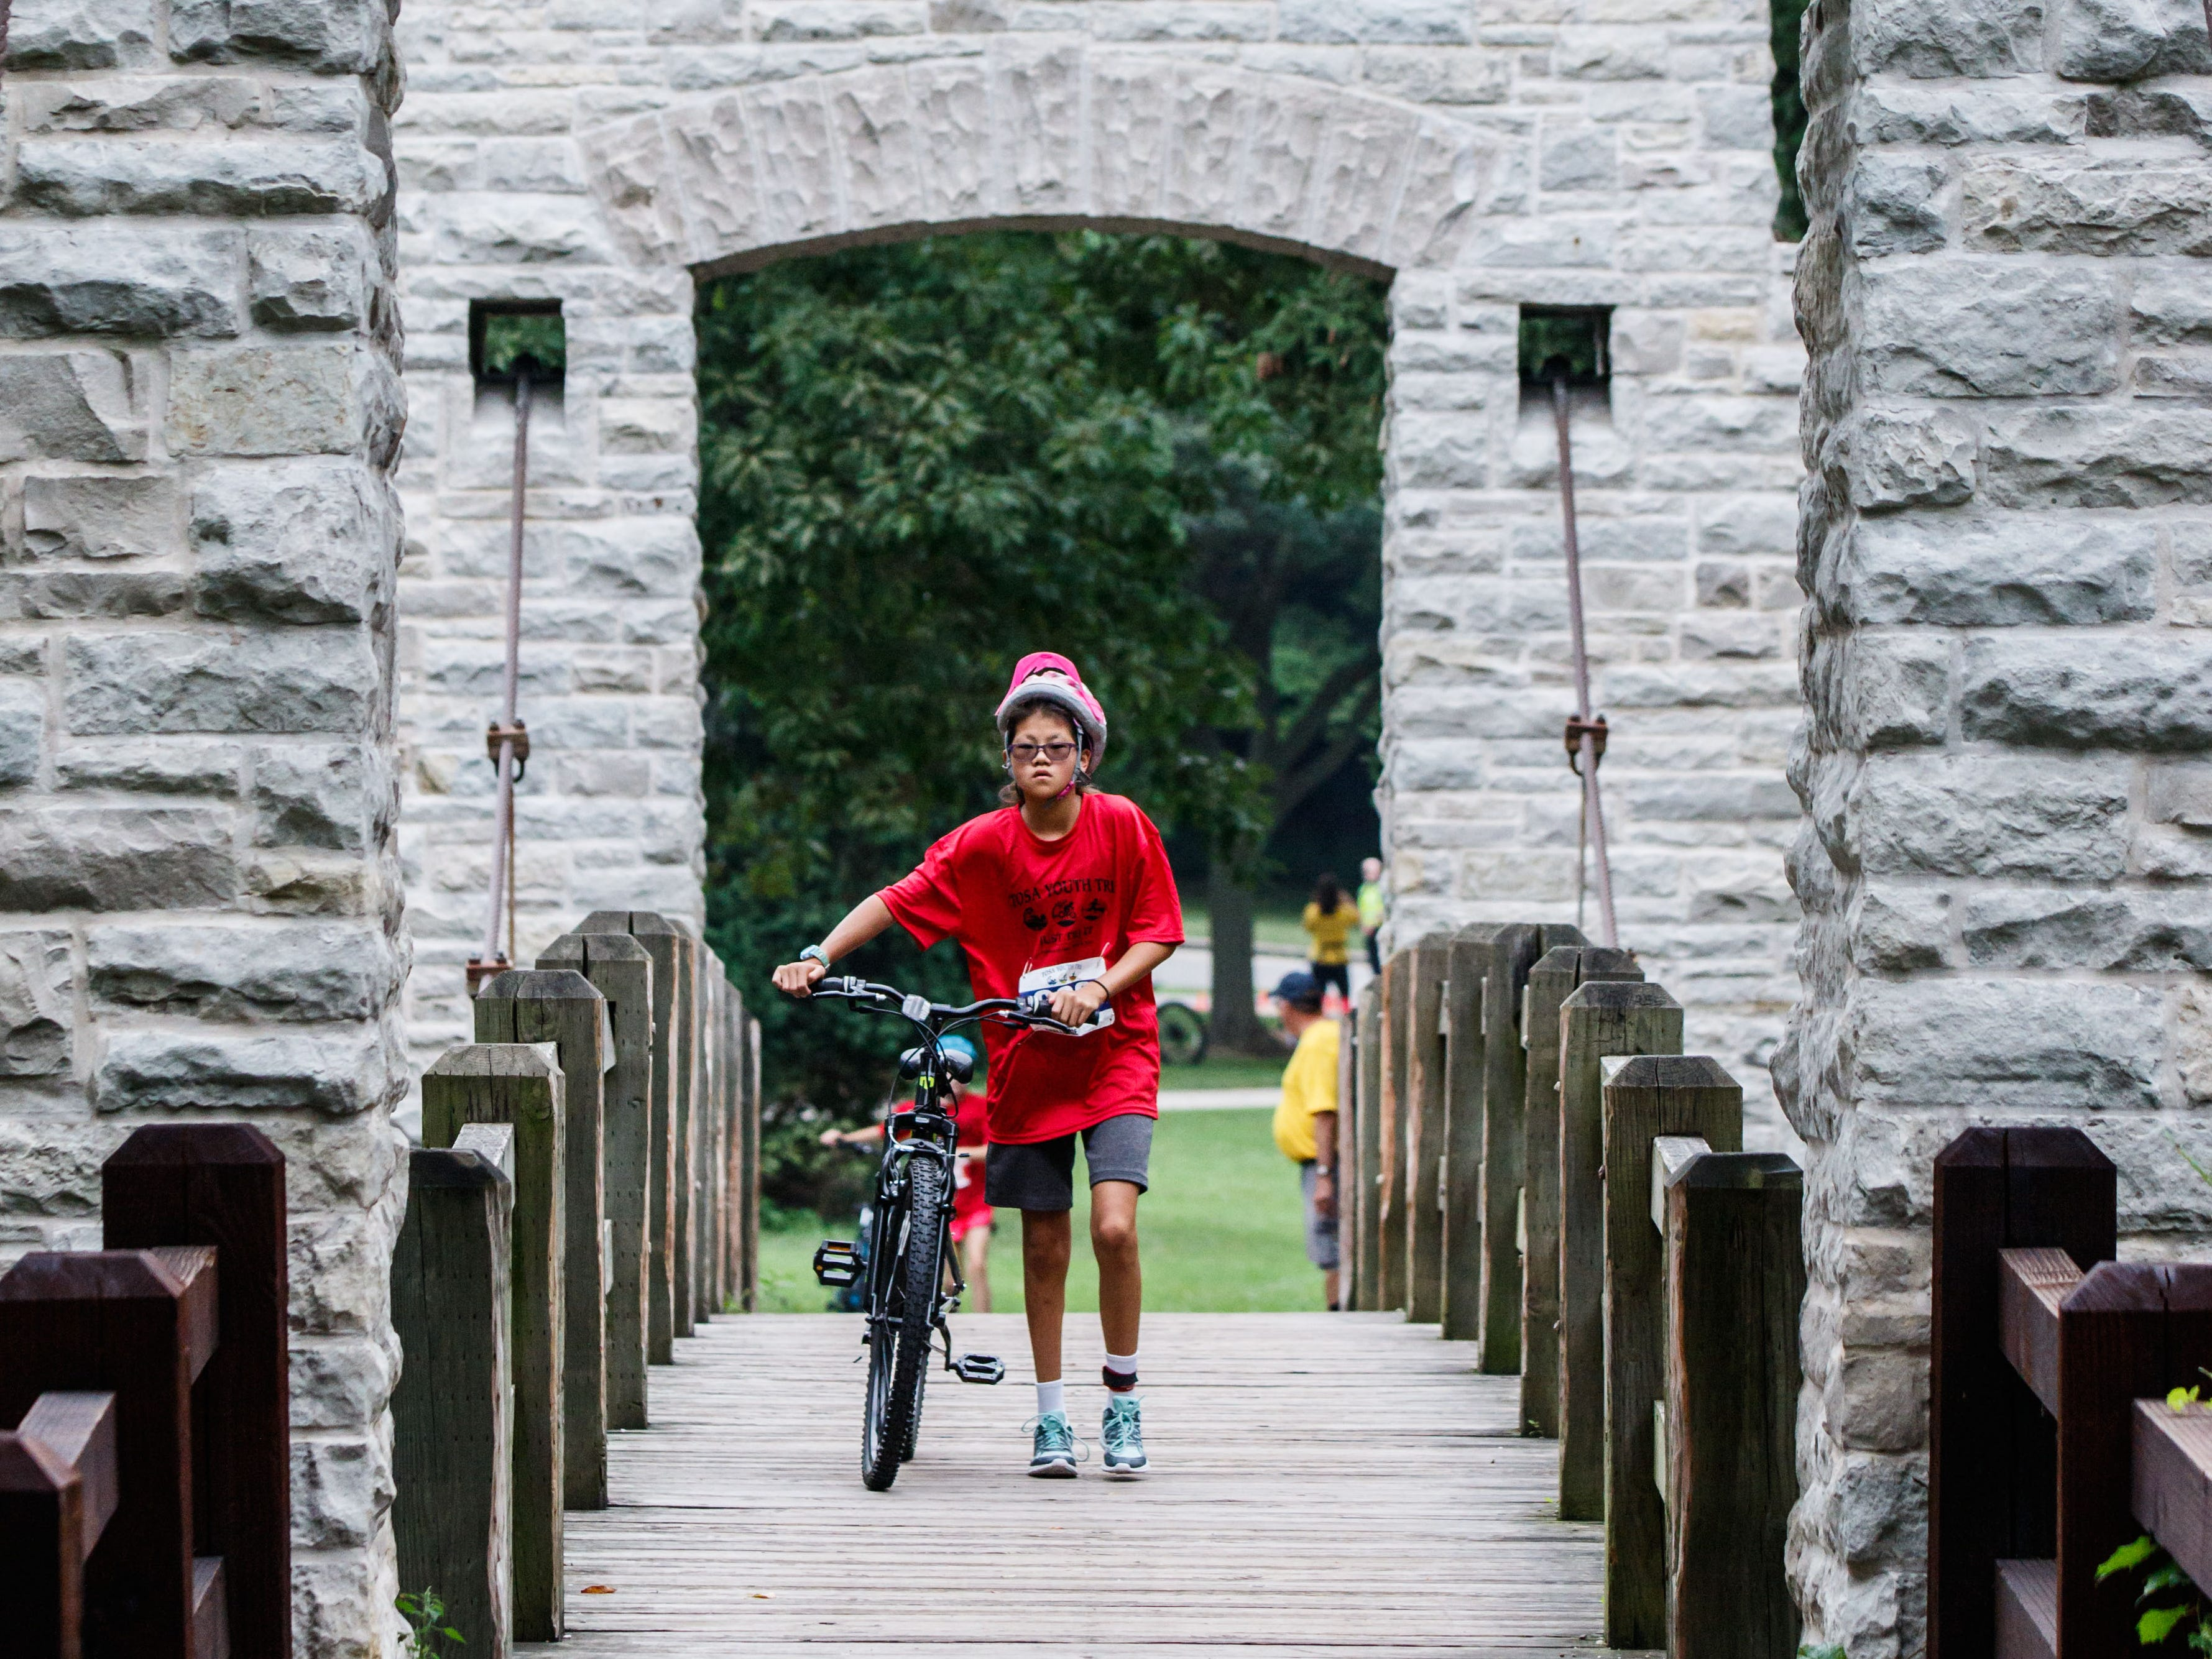 Competitors return from the cycling segment of the third annual TOSA Youth Tri at Hoyt Park in Wauwatosa on Saturday, August 25, 2018. The fundraiser, hosted by Friends of Hoyt Park & Pool, is USA Triathlon sanctioned and features both fun and challenge races for various age groups.